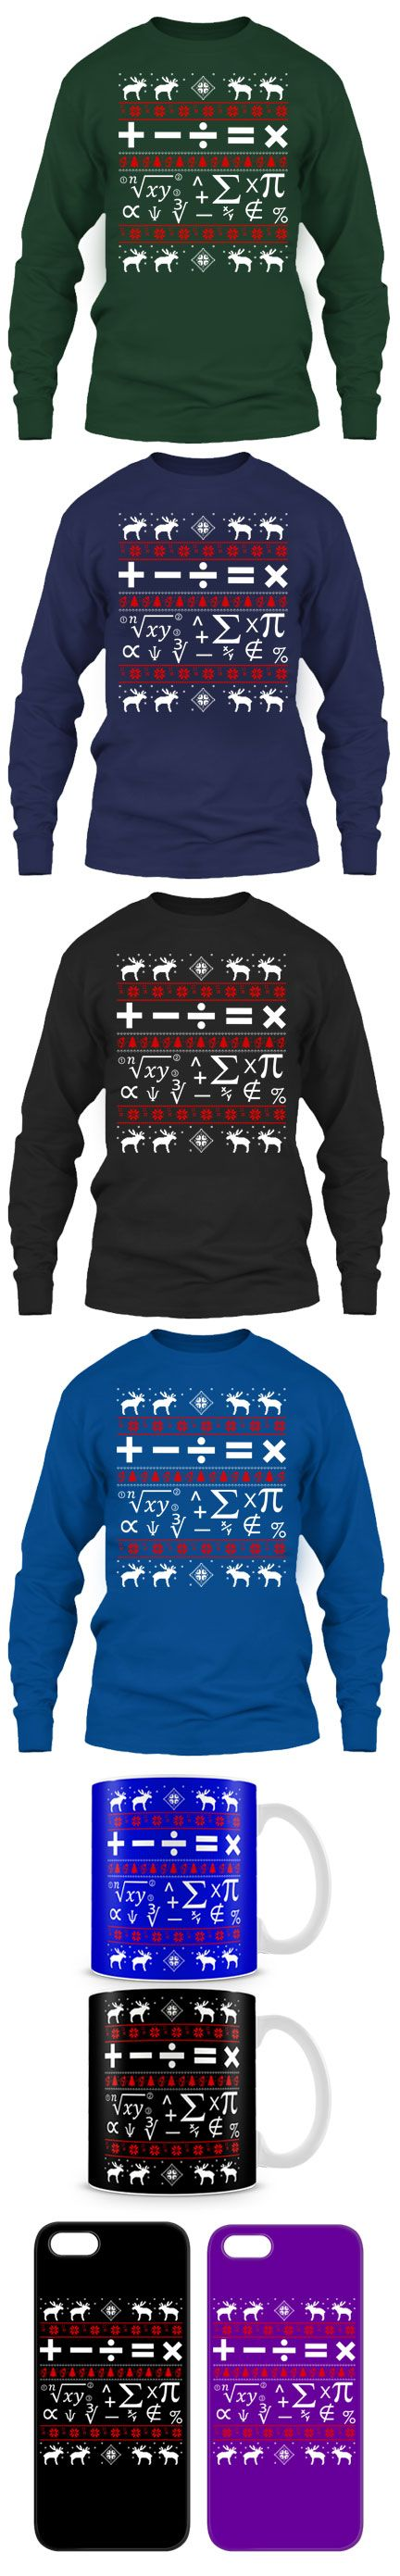 online outlet stores Math Ugly Christmas Sweater! Click The Image To Buy It Now or Tag Someone You Want To Buy This For.